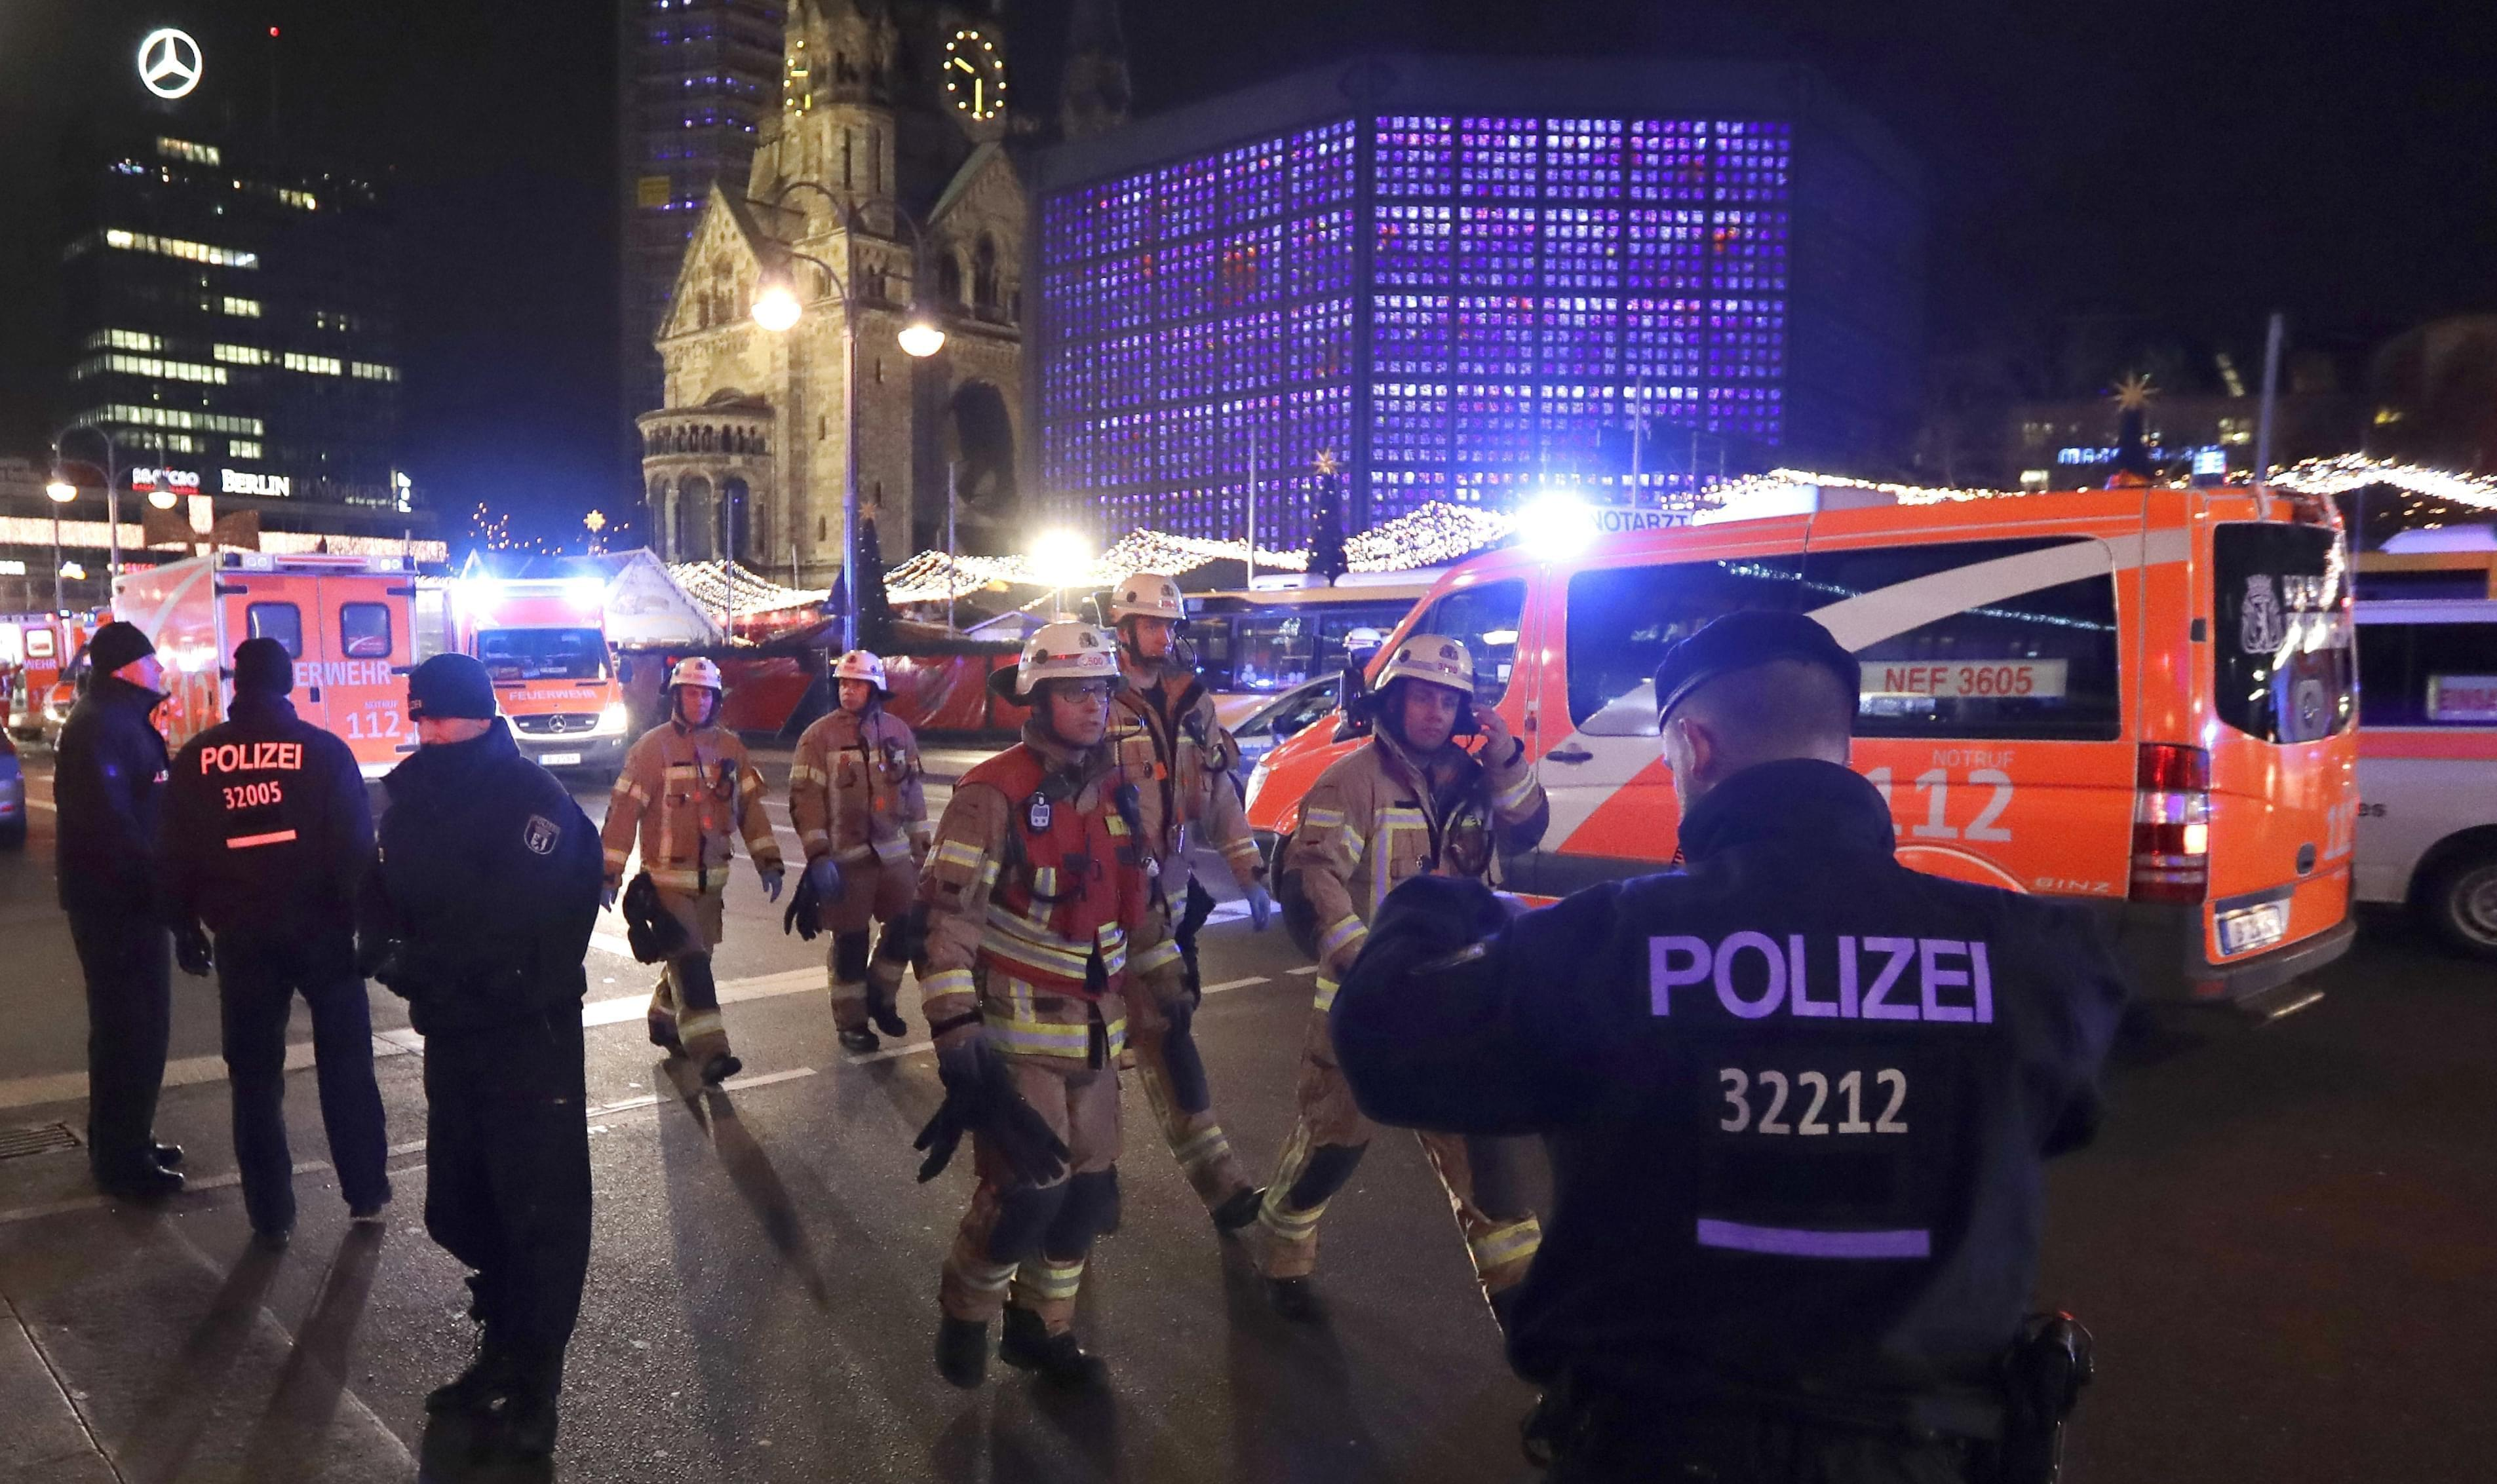 Firefighters walk past ambulances after a truck ran into a crowded Christmas market and killed several people in Berlin, Germany, Monday, Dec. 19, 2016.